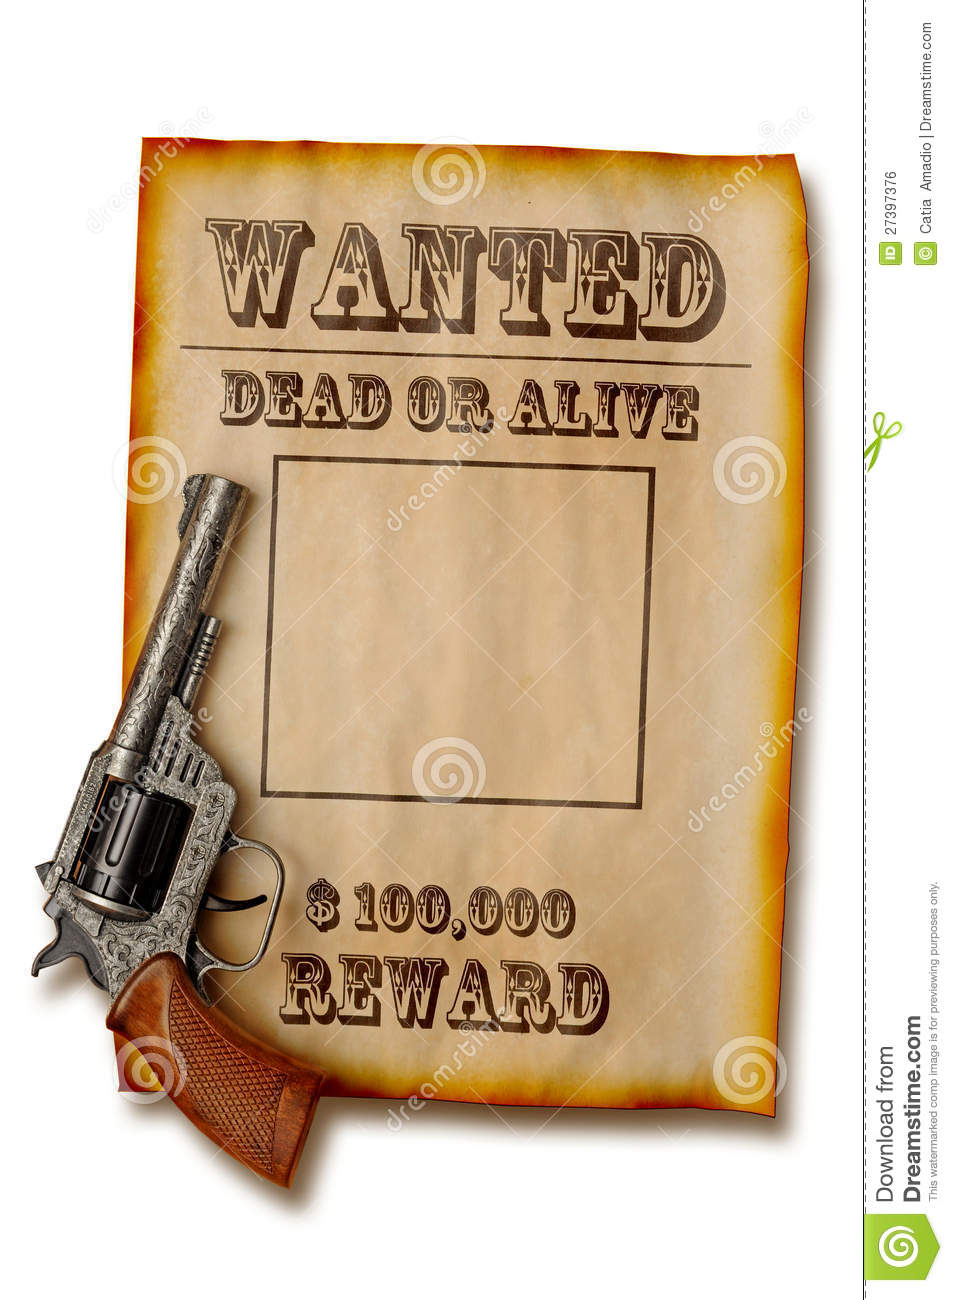 Wanted dead or alive stock photos, royalty free wanted dead or alive